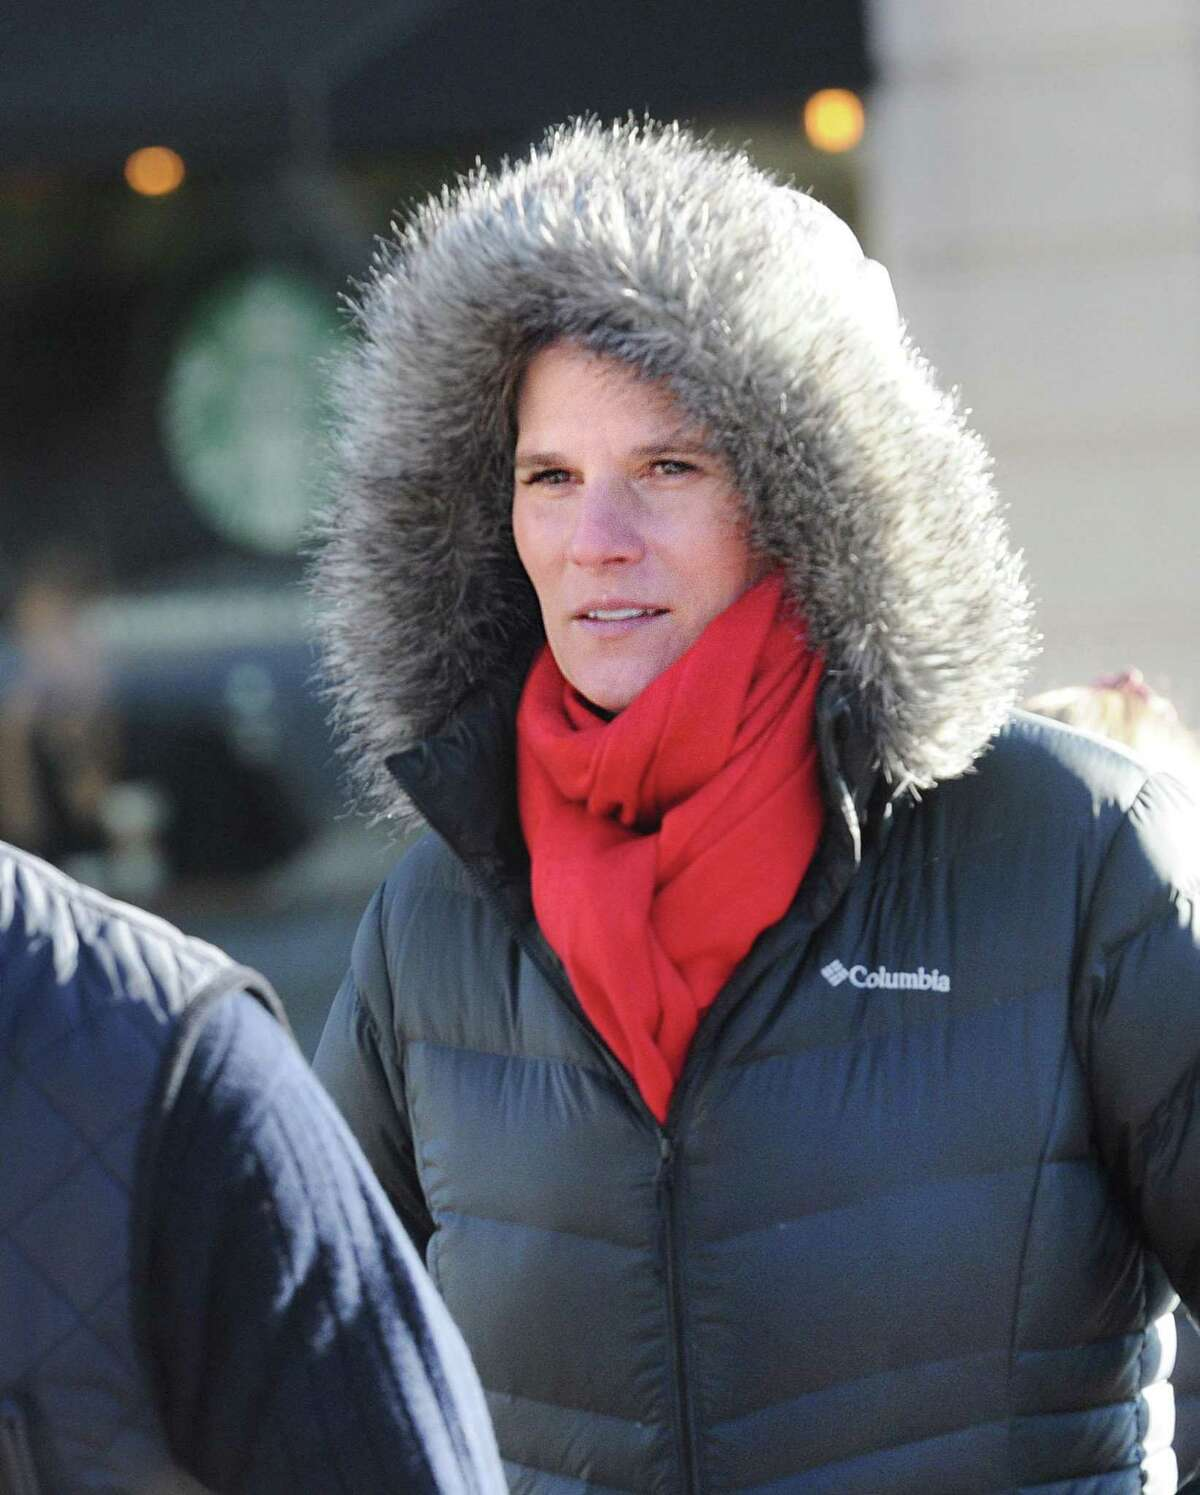 With the temperature in the mid-20 degree range, Southern Californian Alix Hobbs, was decked out in a winter coat with a hood and wore a scarf as she walked on Greenwich Avenue in Greenwich, Conn., Tuesday, Dec. 26, 2017. When asked about the cold weather Hobbs said,